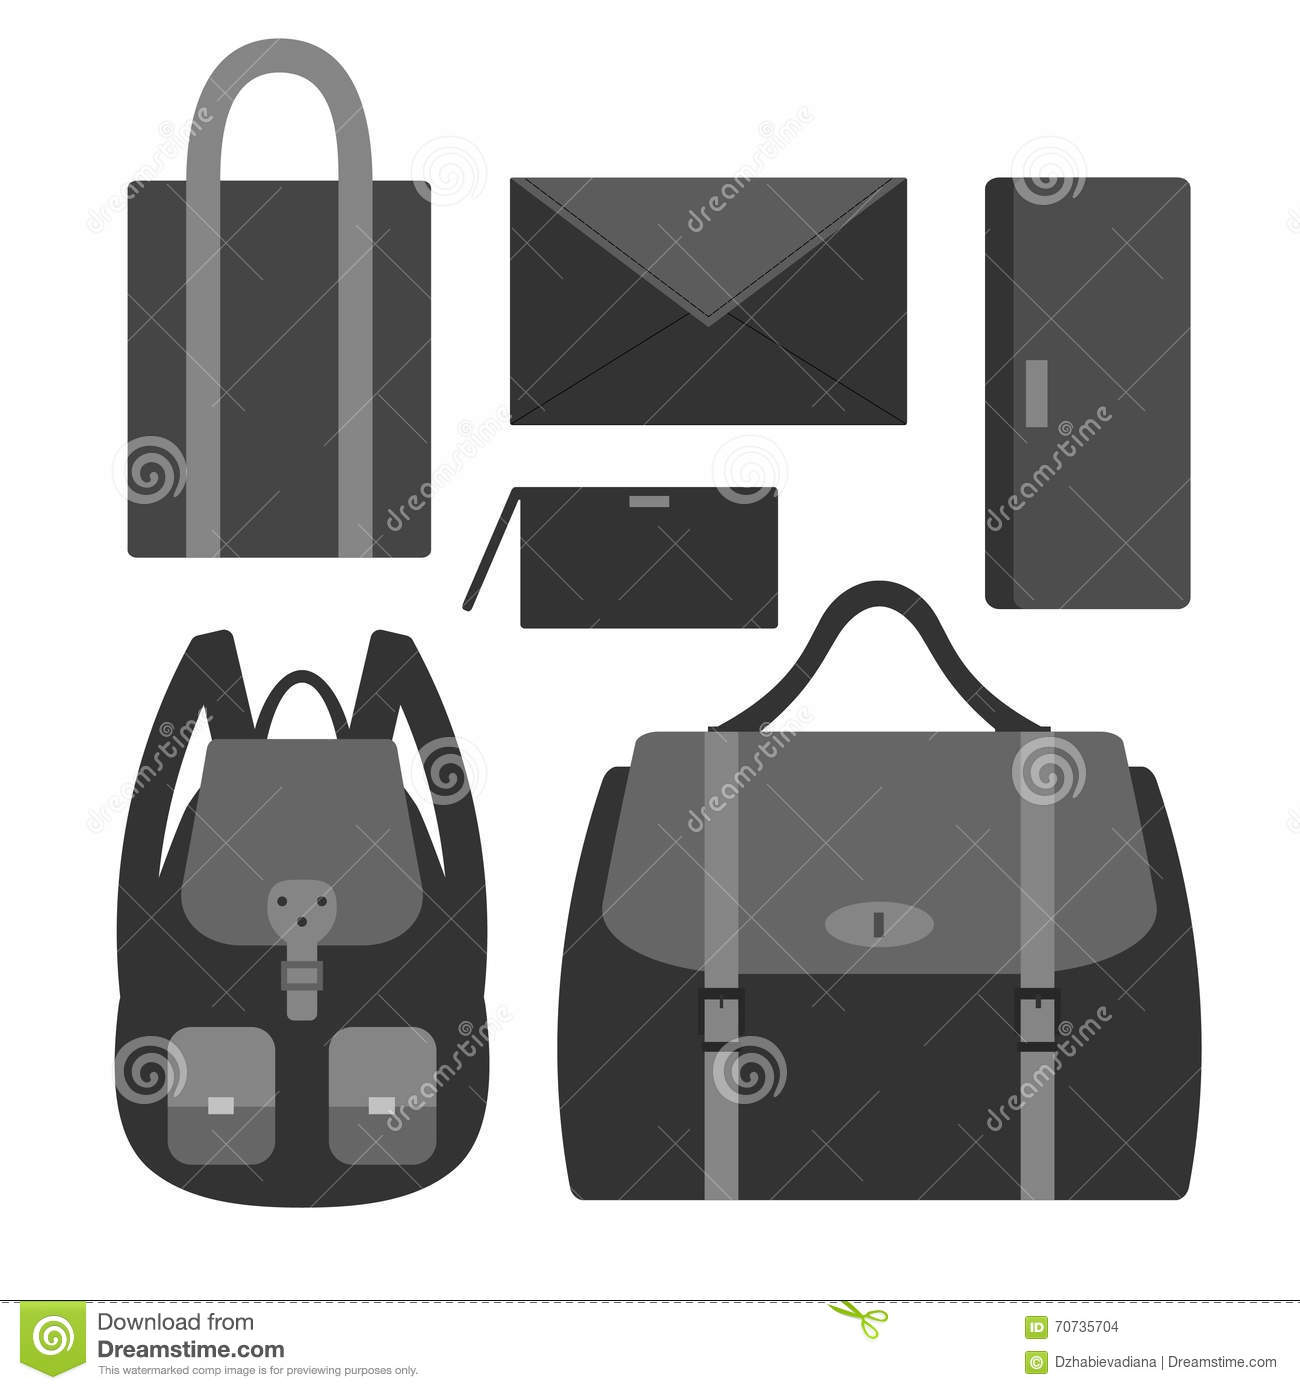 ea9c0d52296 Flat vector icon set with styles of female bags. 6 types of woman handbags   backpack